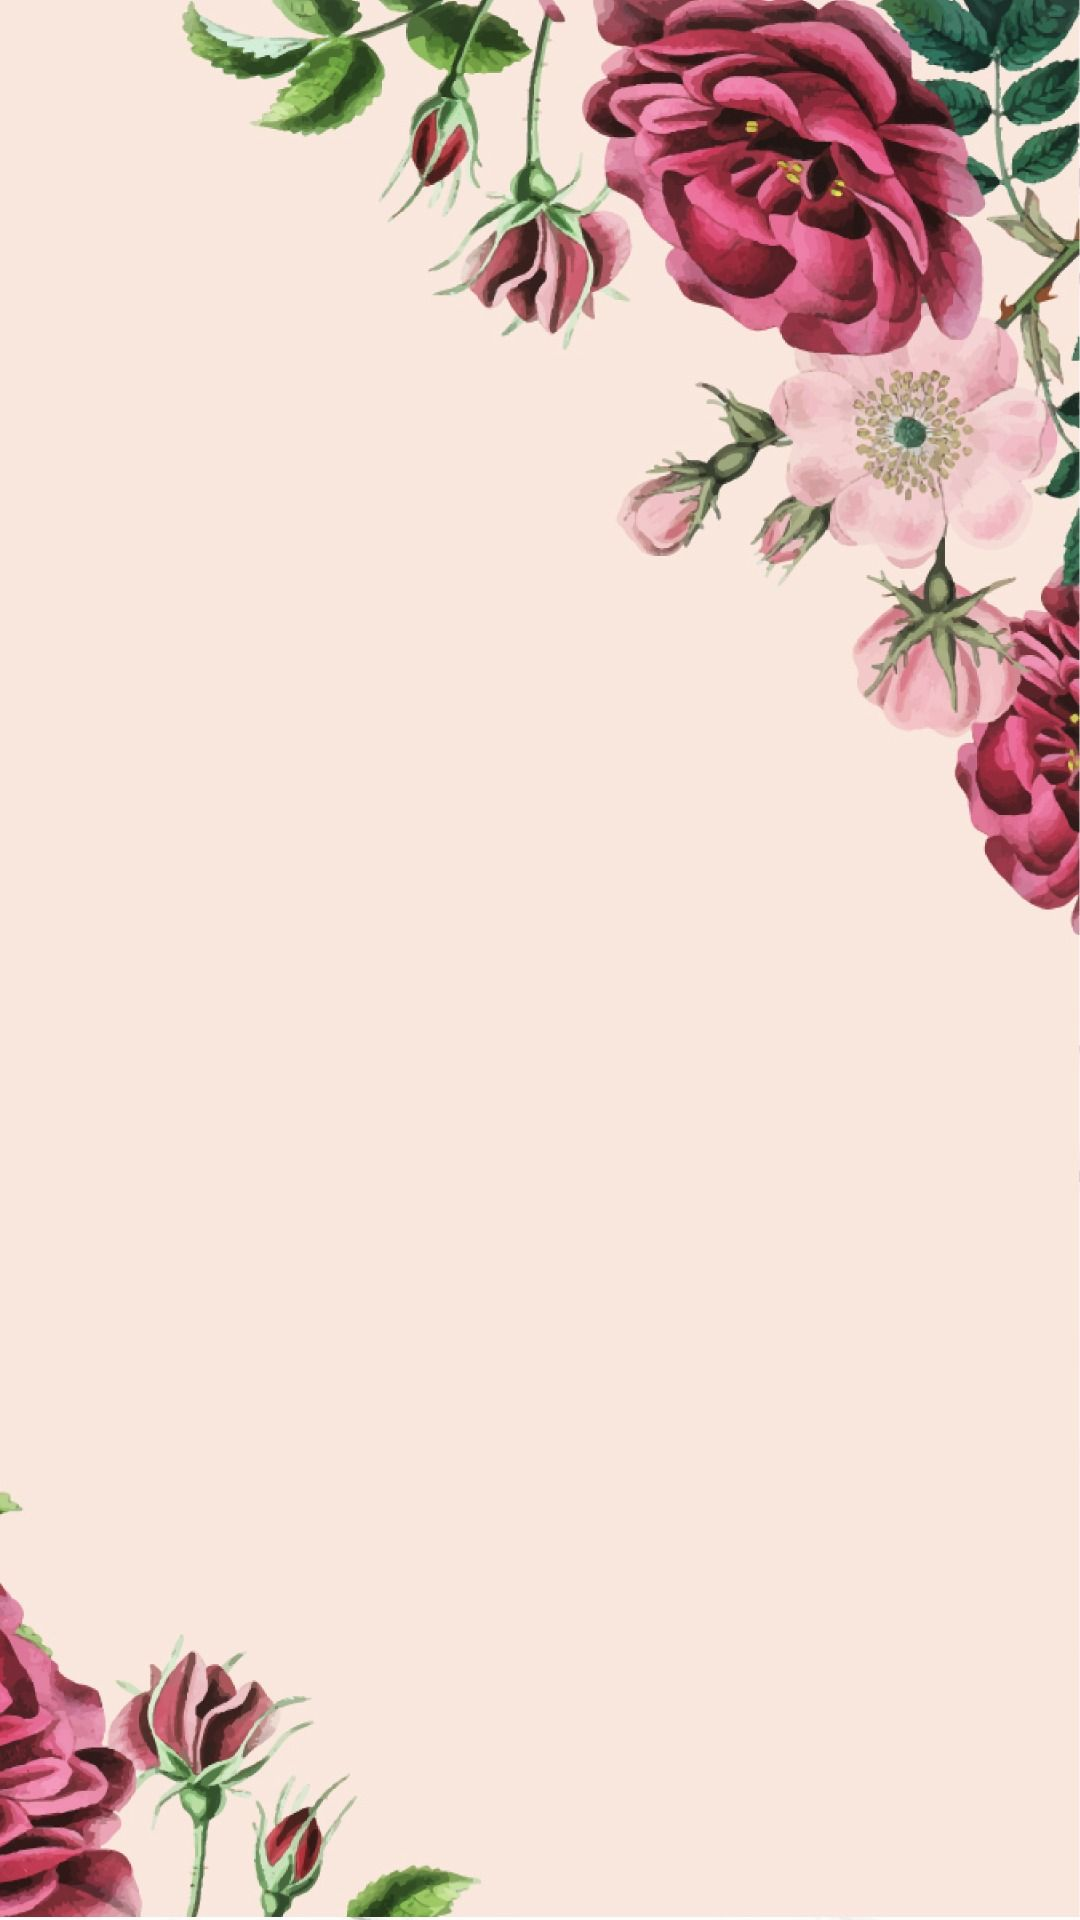 Free 20 Vector Floral Wallpaper And Background Download Free Hd Images In 2020 Floral Wallpaper Iphone Vintage Flowers Wallpaper Floral Background